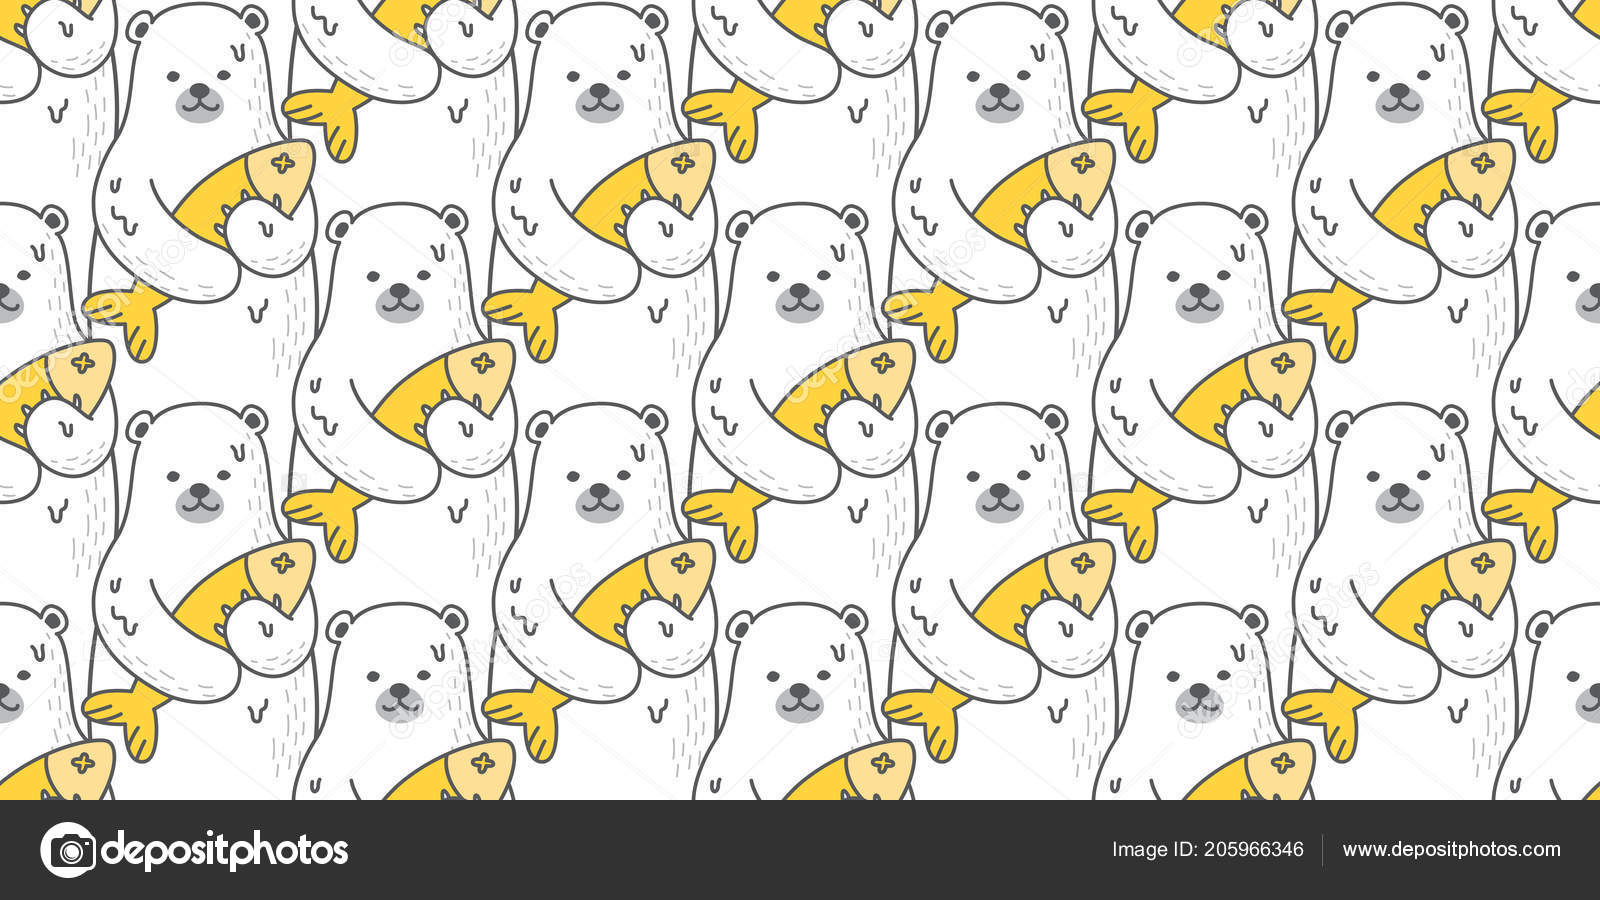 Oso Oso Polar Sin Costuras Vector Patrón Peces Aislados Wallpaper ...